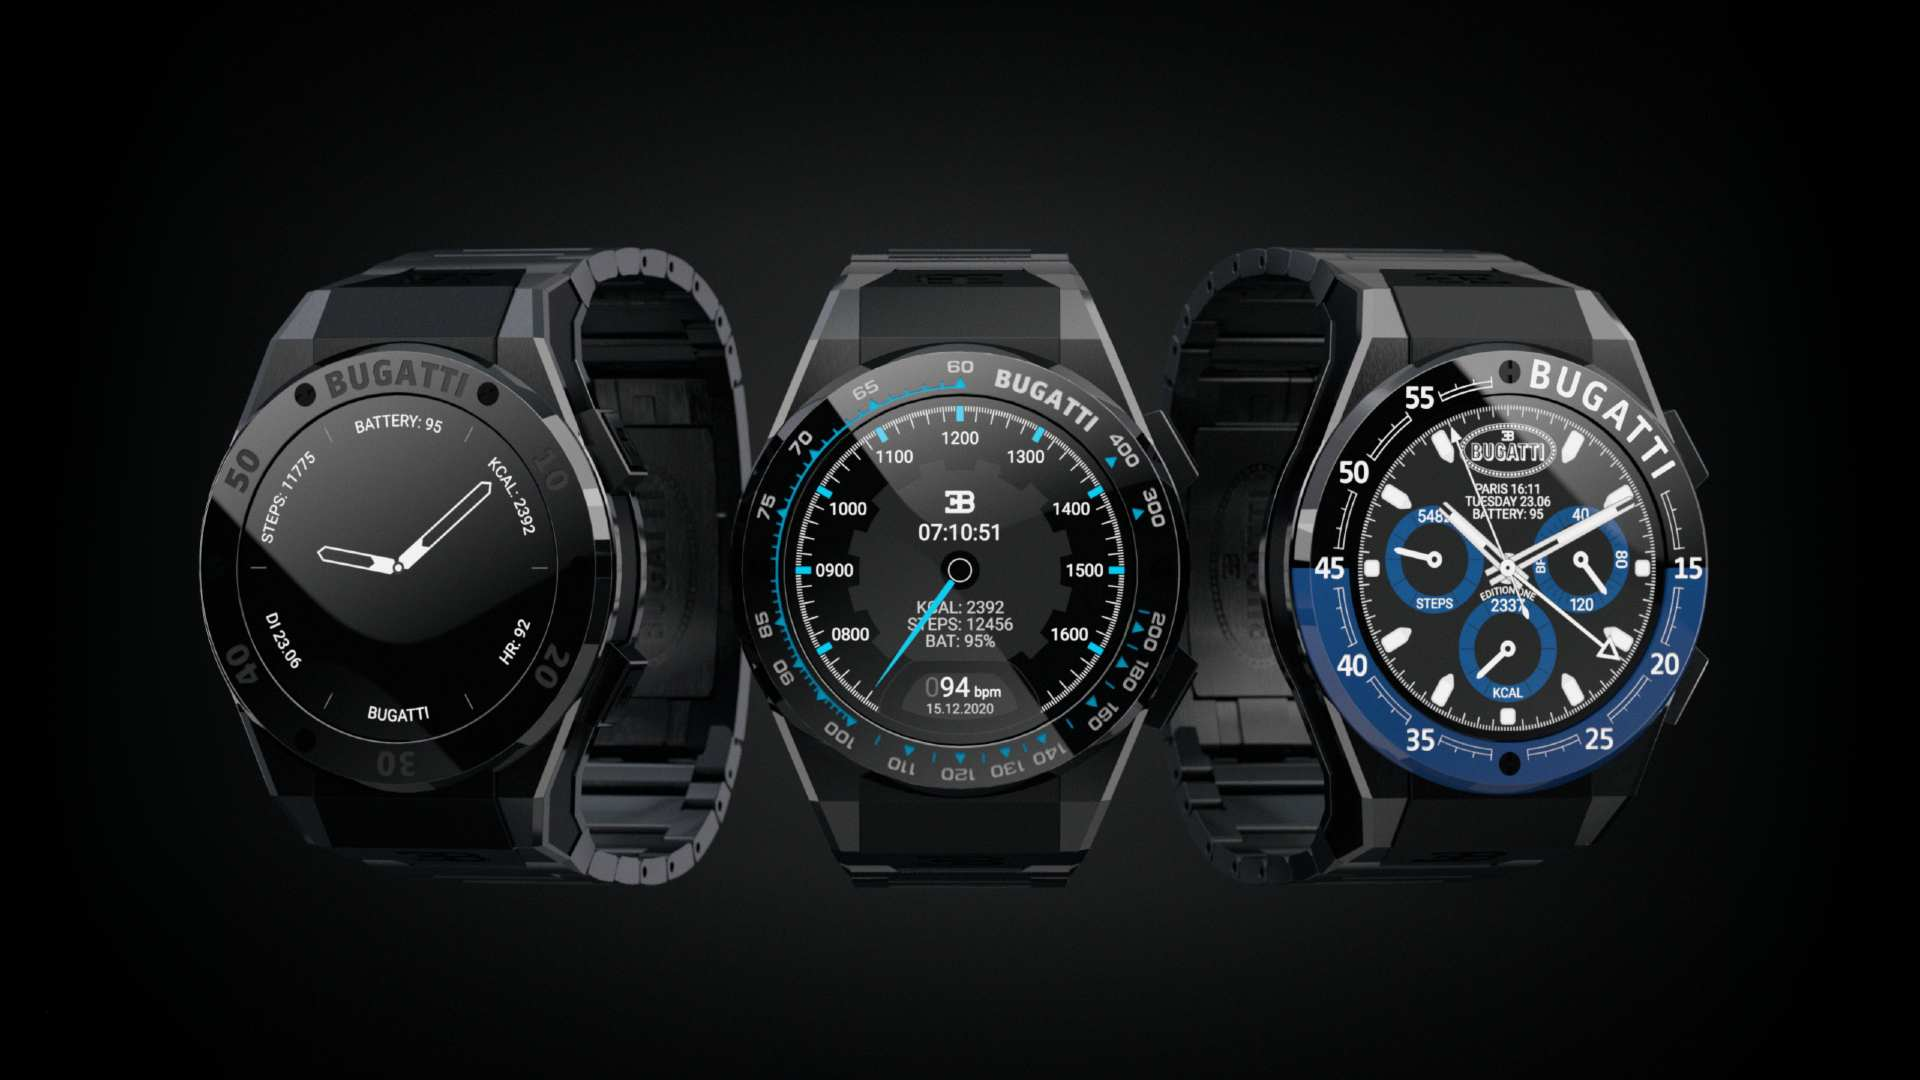 Bugatti smartwatches to arrive in October 2021, prices to start at around Rs 80,000- Technology News, Gadgetclock